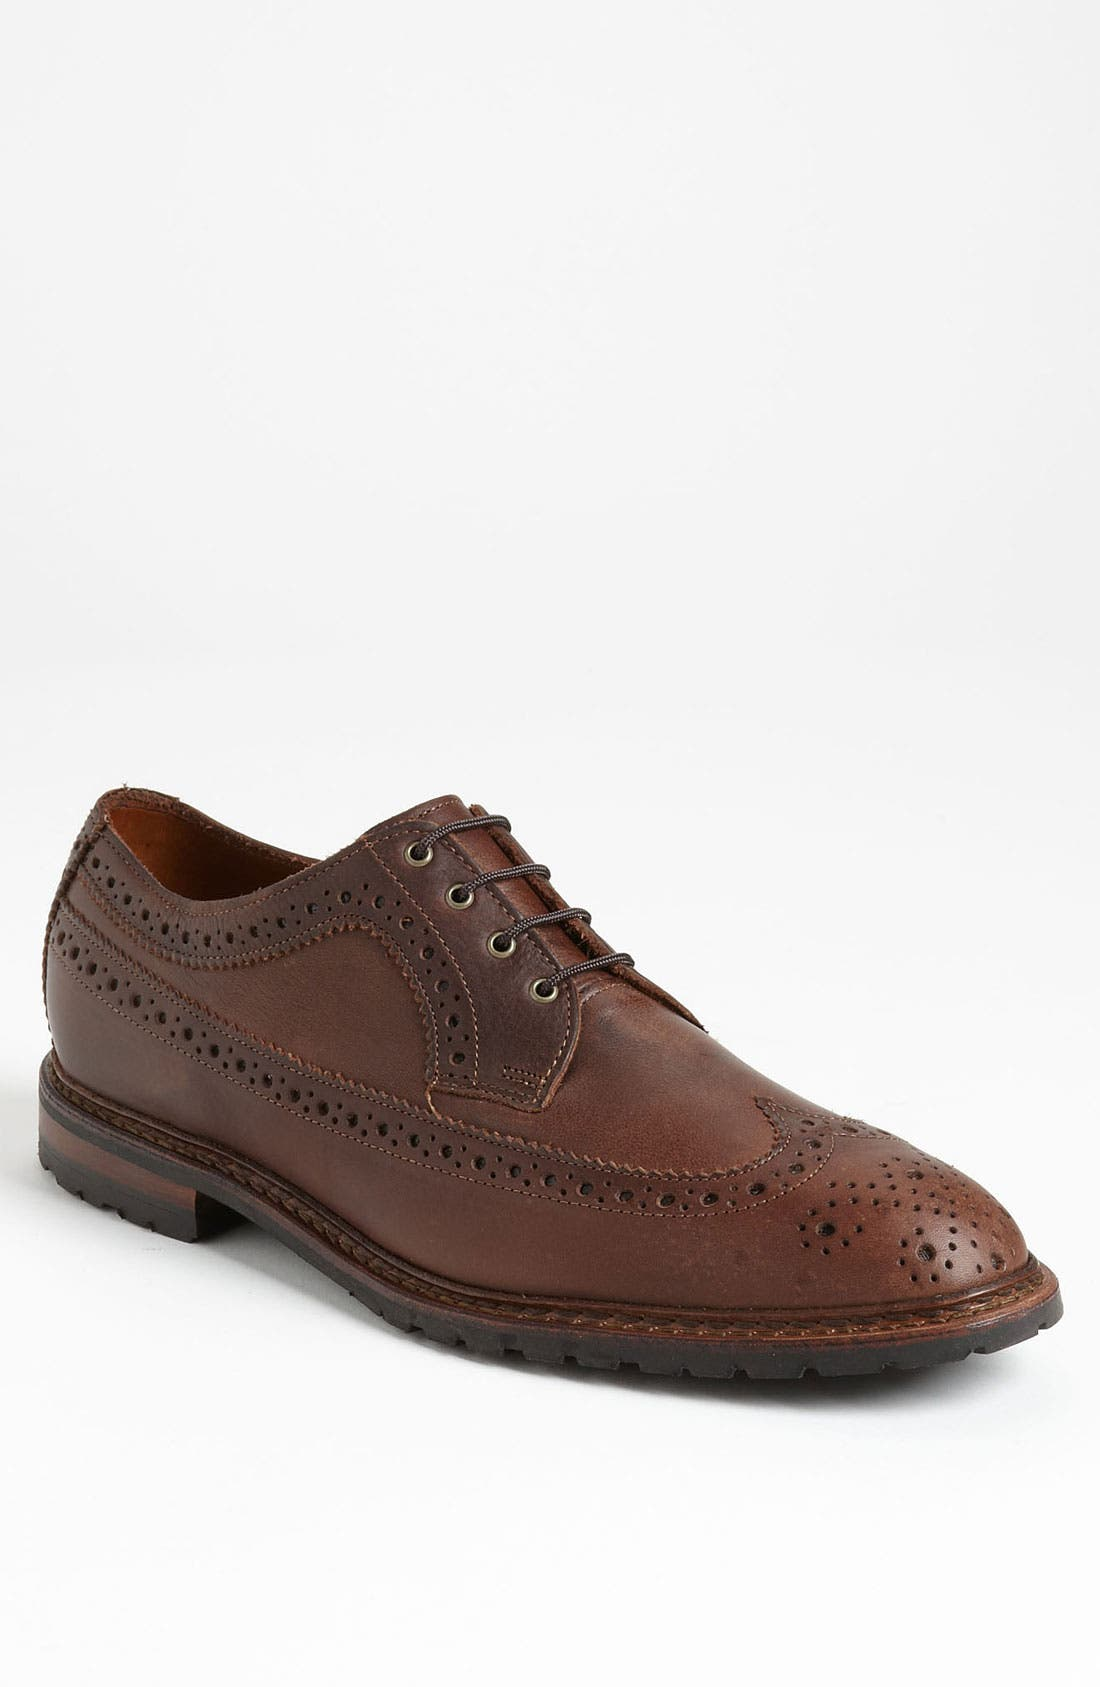 Alternate Image 1 Selected - Allen Edmonds 'Aberdeen' Longwing Derby